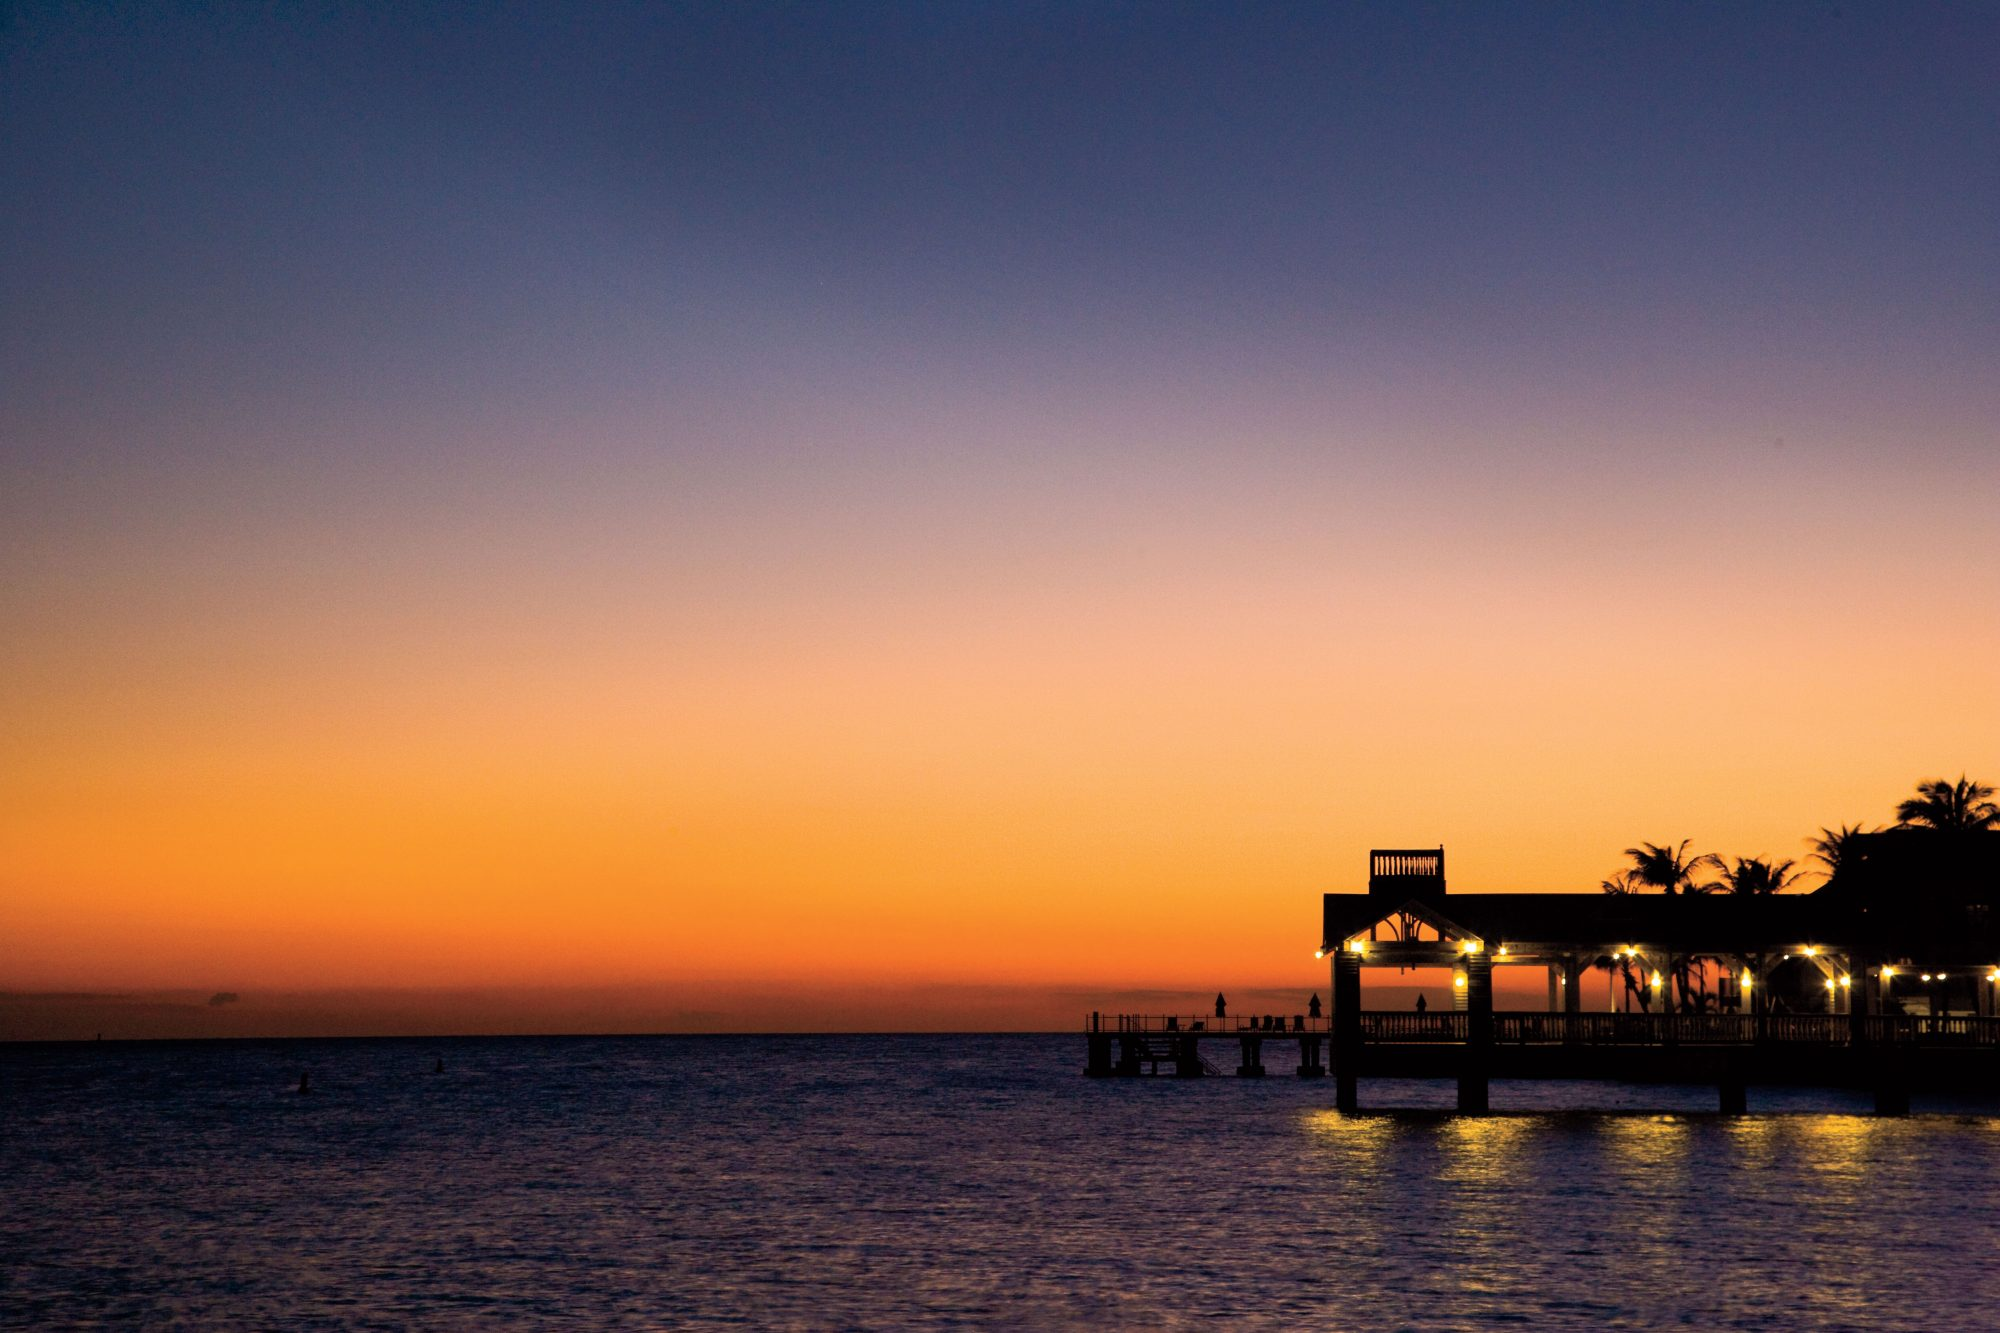 10. Watch the Sunset in Key West